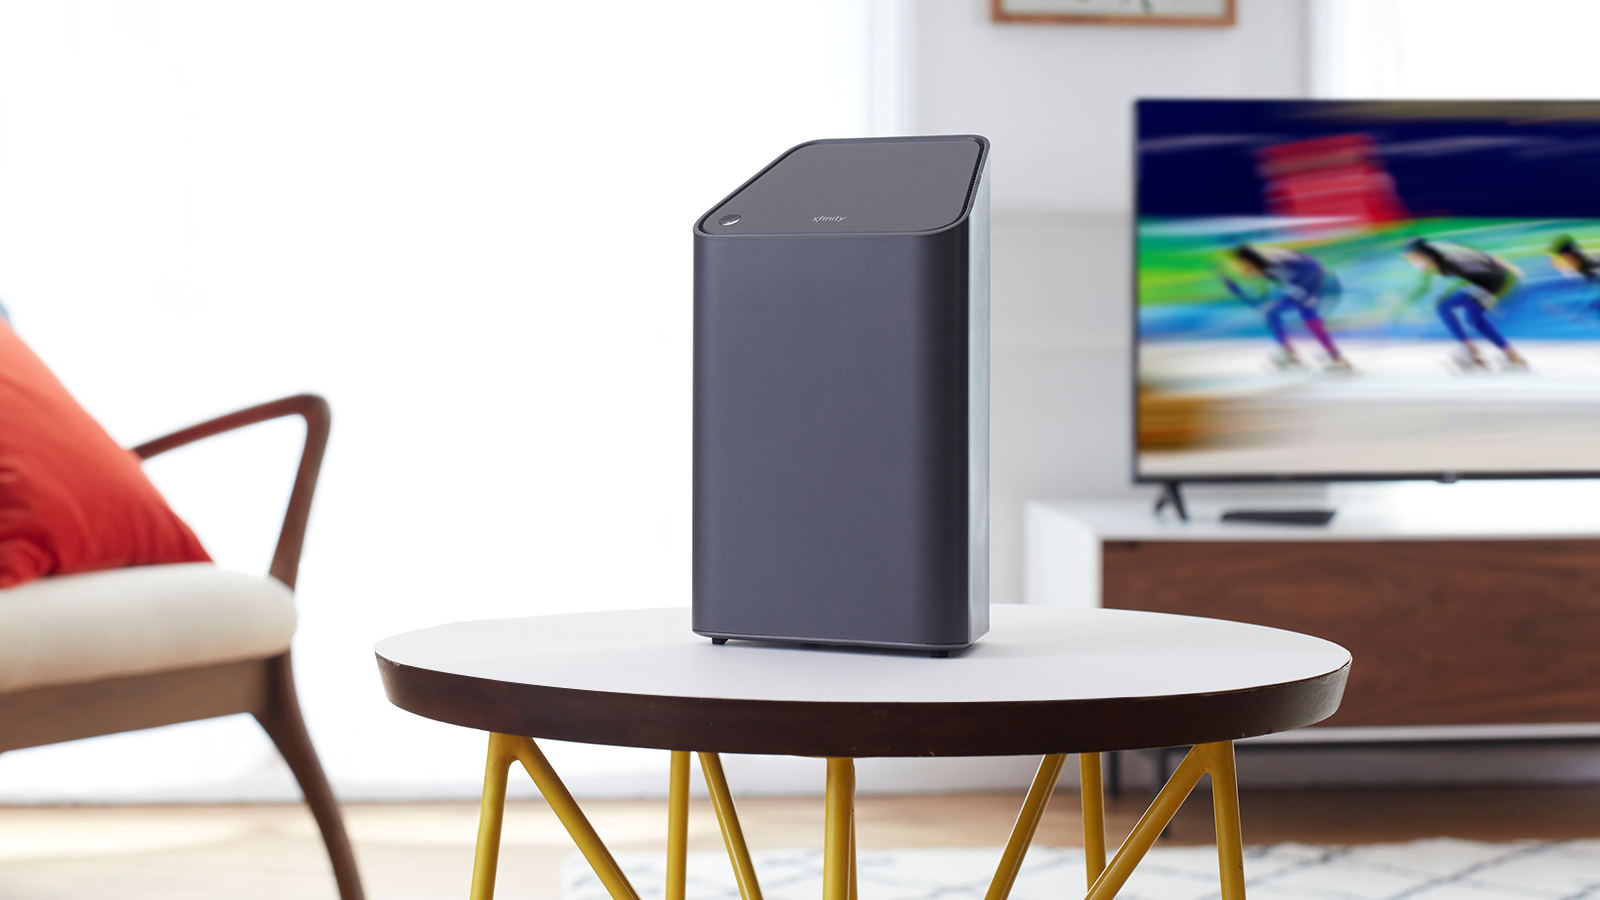 Comcast's xFi Advanced Gateway modem is now available nationwide